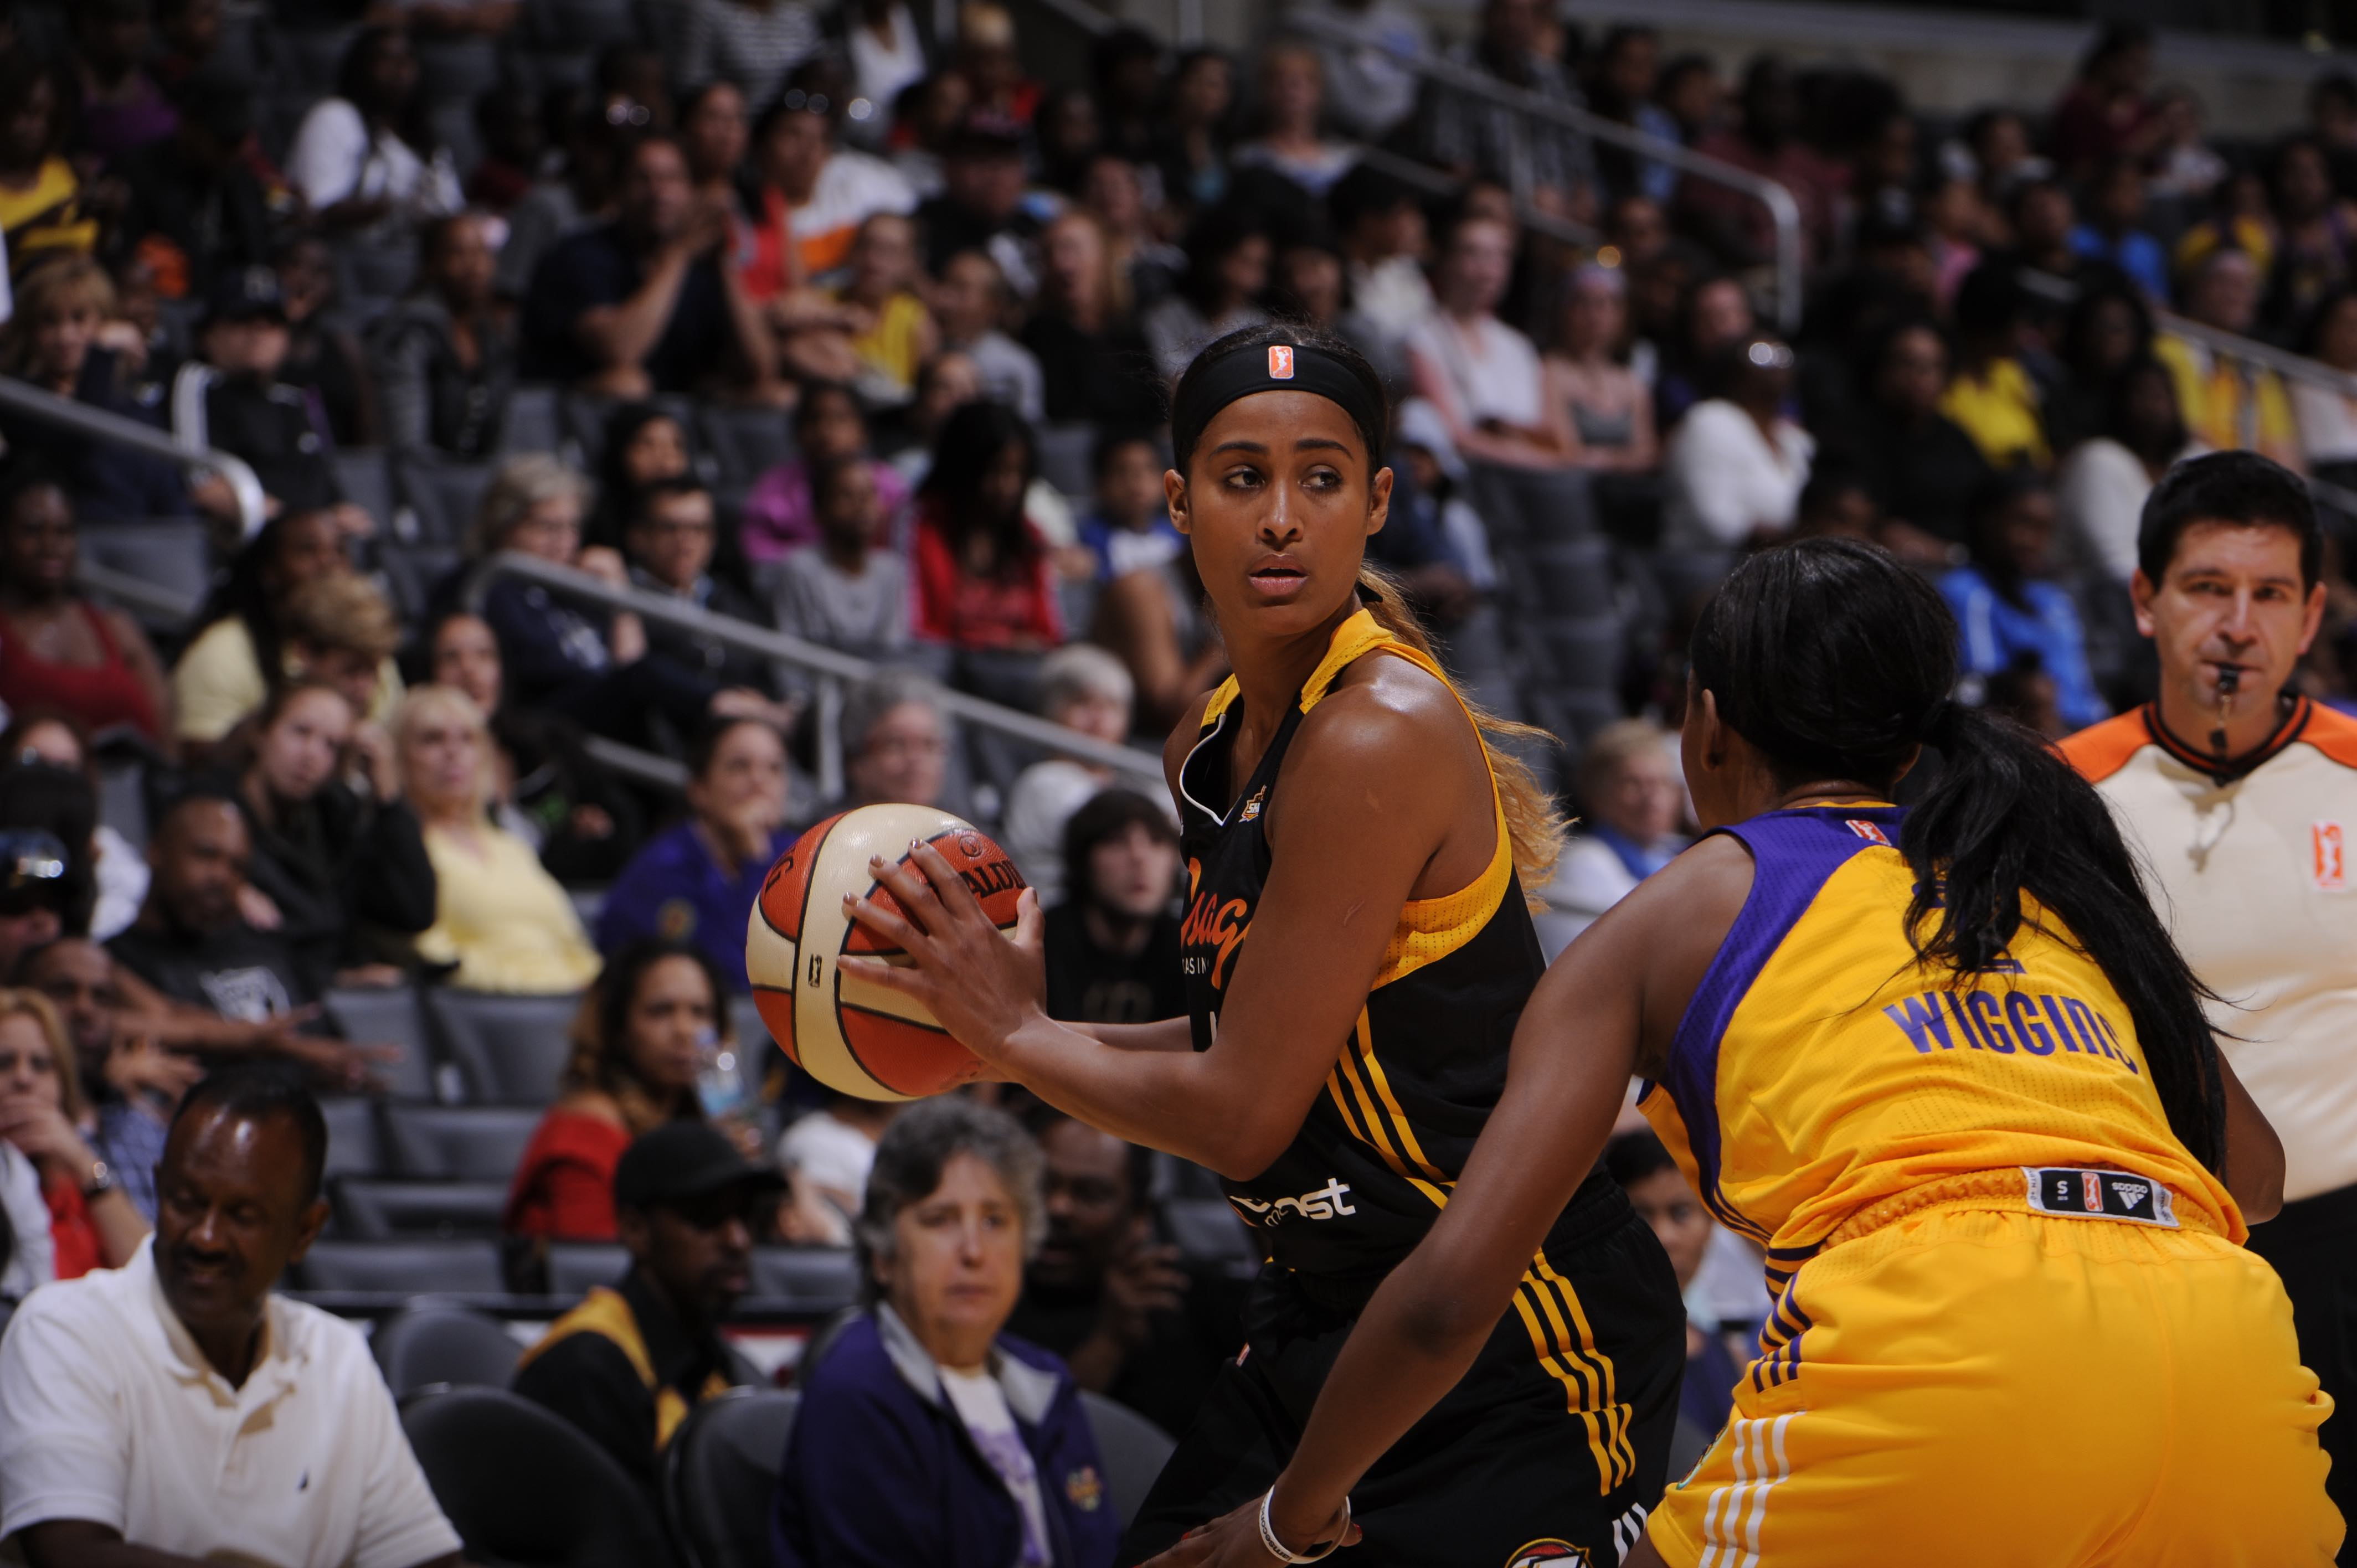 LOS ANGELES, CA - AUGUST 5: Skylar Diggins #4 of the Tulsa Shock handles the ball against Candice Wiggins #2 of the Los Angeles Sparks at STAPLES Center on August 5 2014 in Los Angeles, California. NOTE TO USER: User expressly acknowledges and agrees that, by downloading and or using this photograph, User is consenting to the terms and conditions of the Getty Images License Agreement. Mandatory Copyright Notice: Copyright 2014 NBAE (Photo by Juan Ocampo/NBAE via Getty Images)